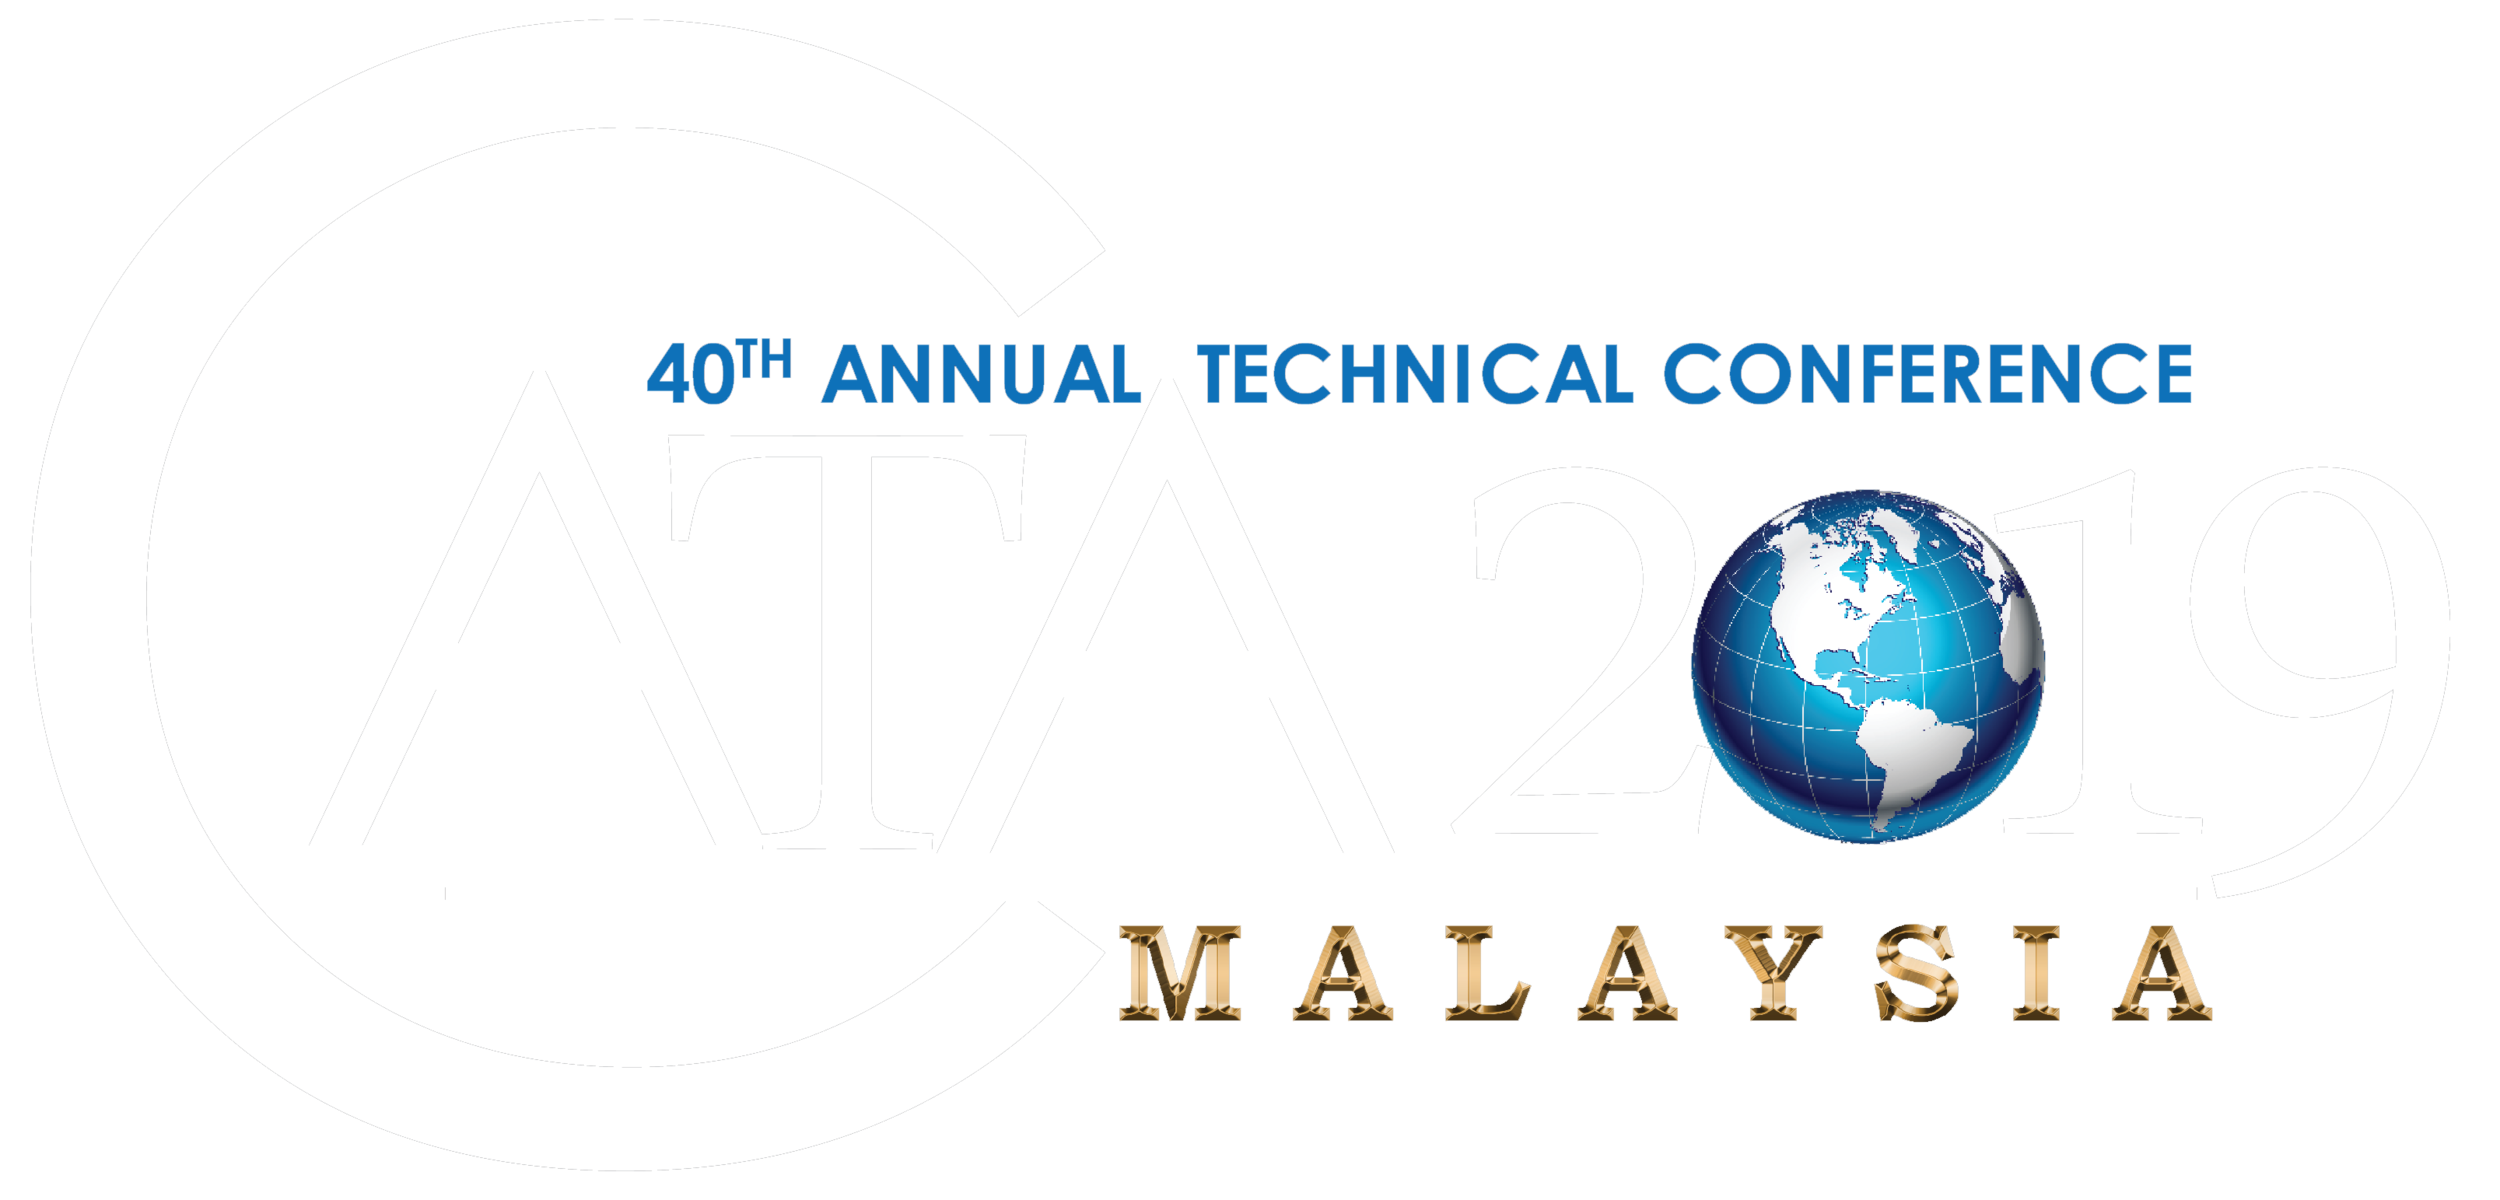 CATA40_Logo_2t.png